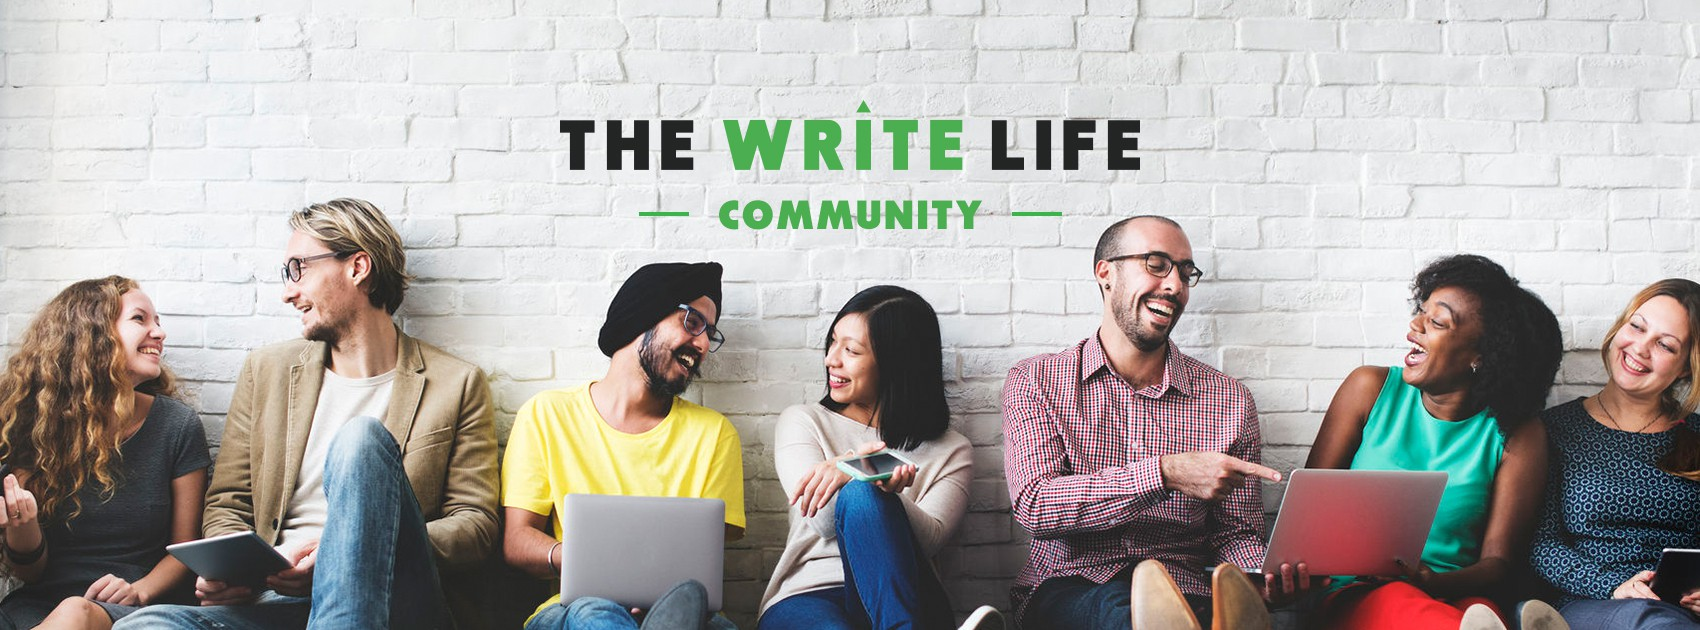 Social media assets for The Write Life